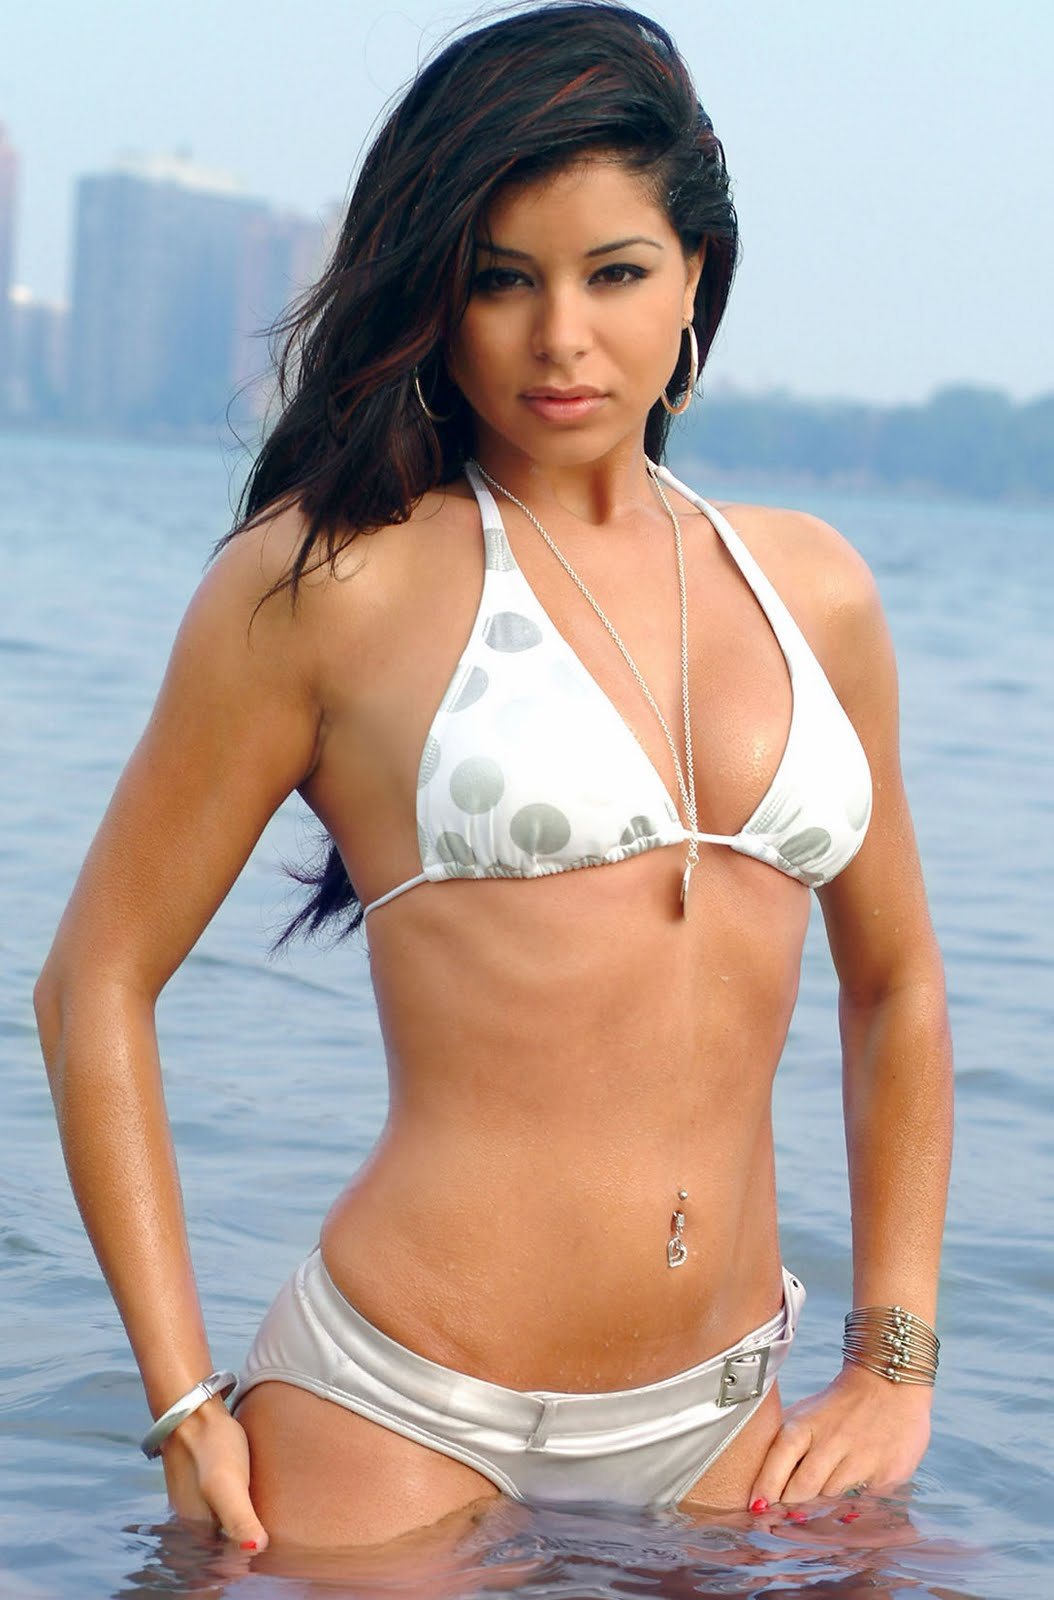 Thephotozone Rima Fakih Hot Bikini Photo Gallery